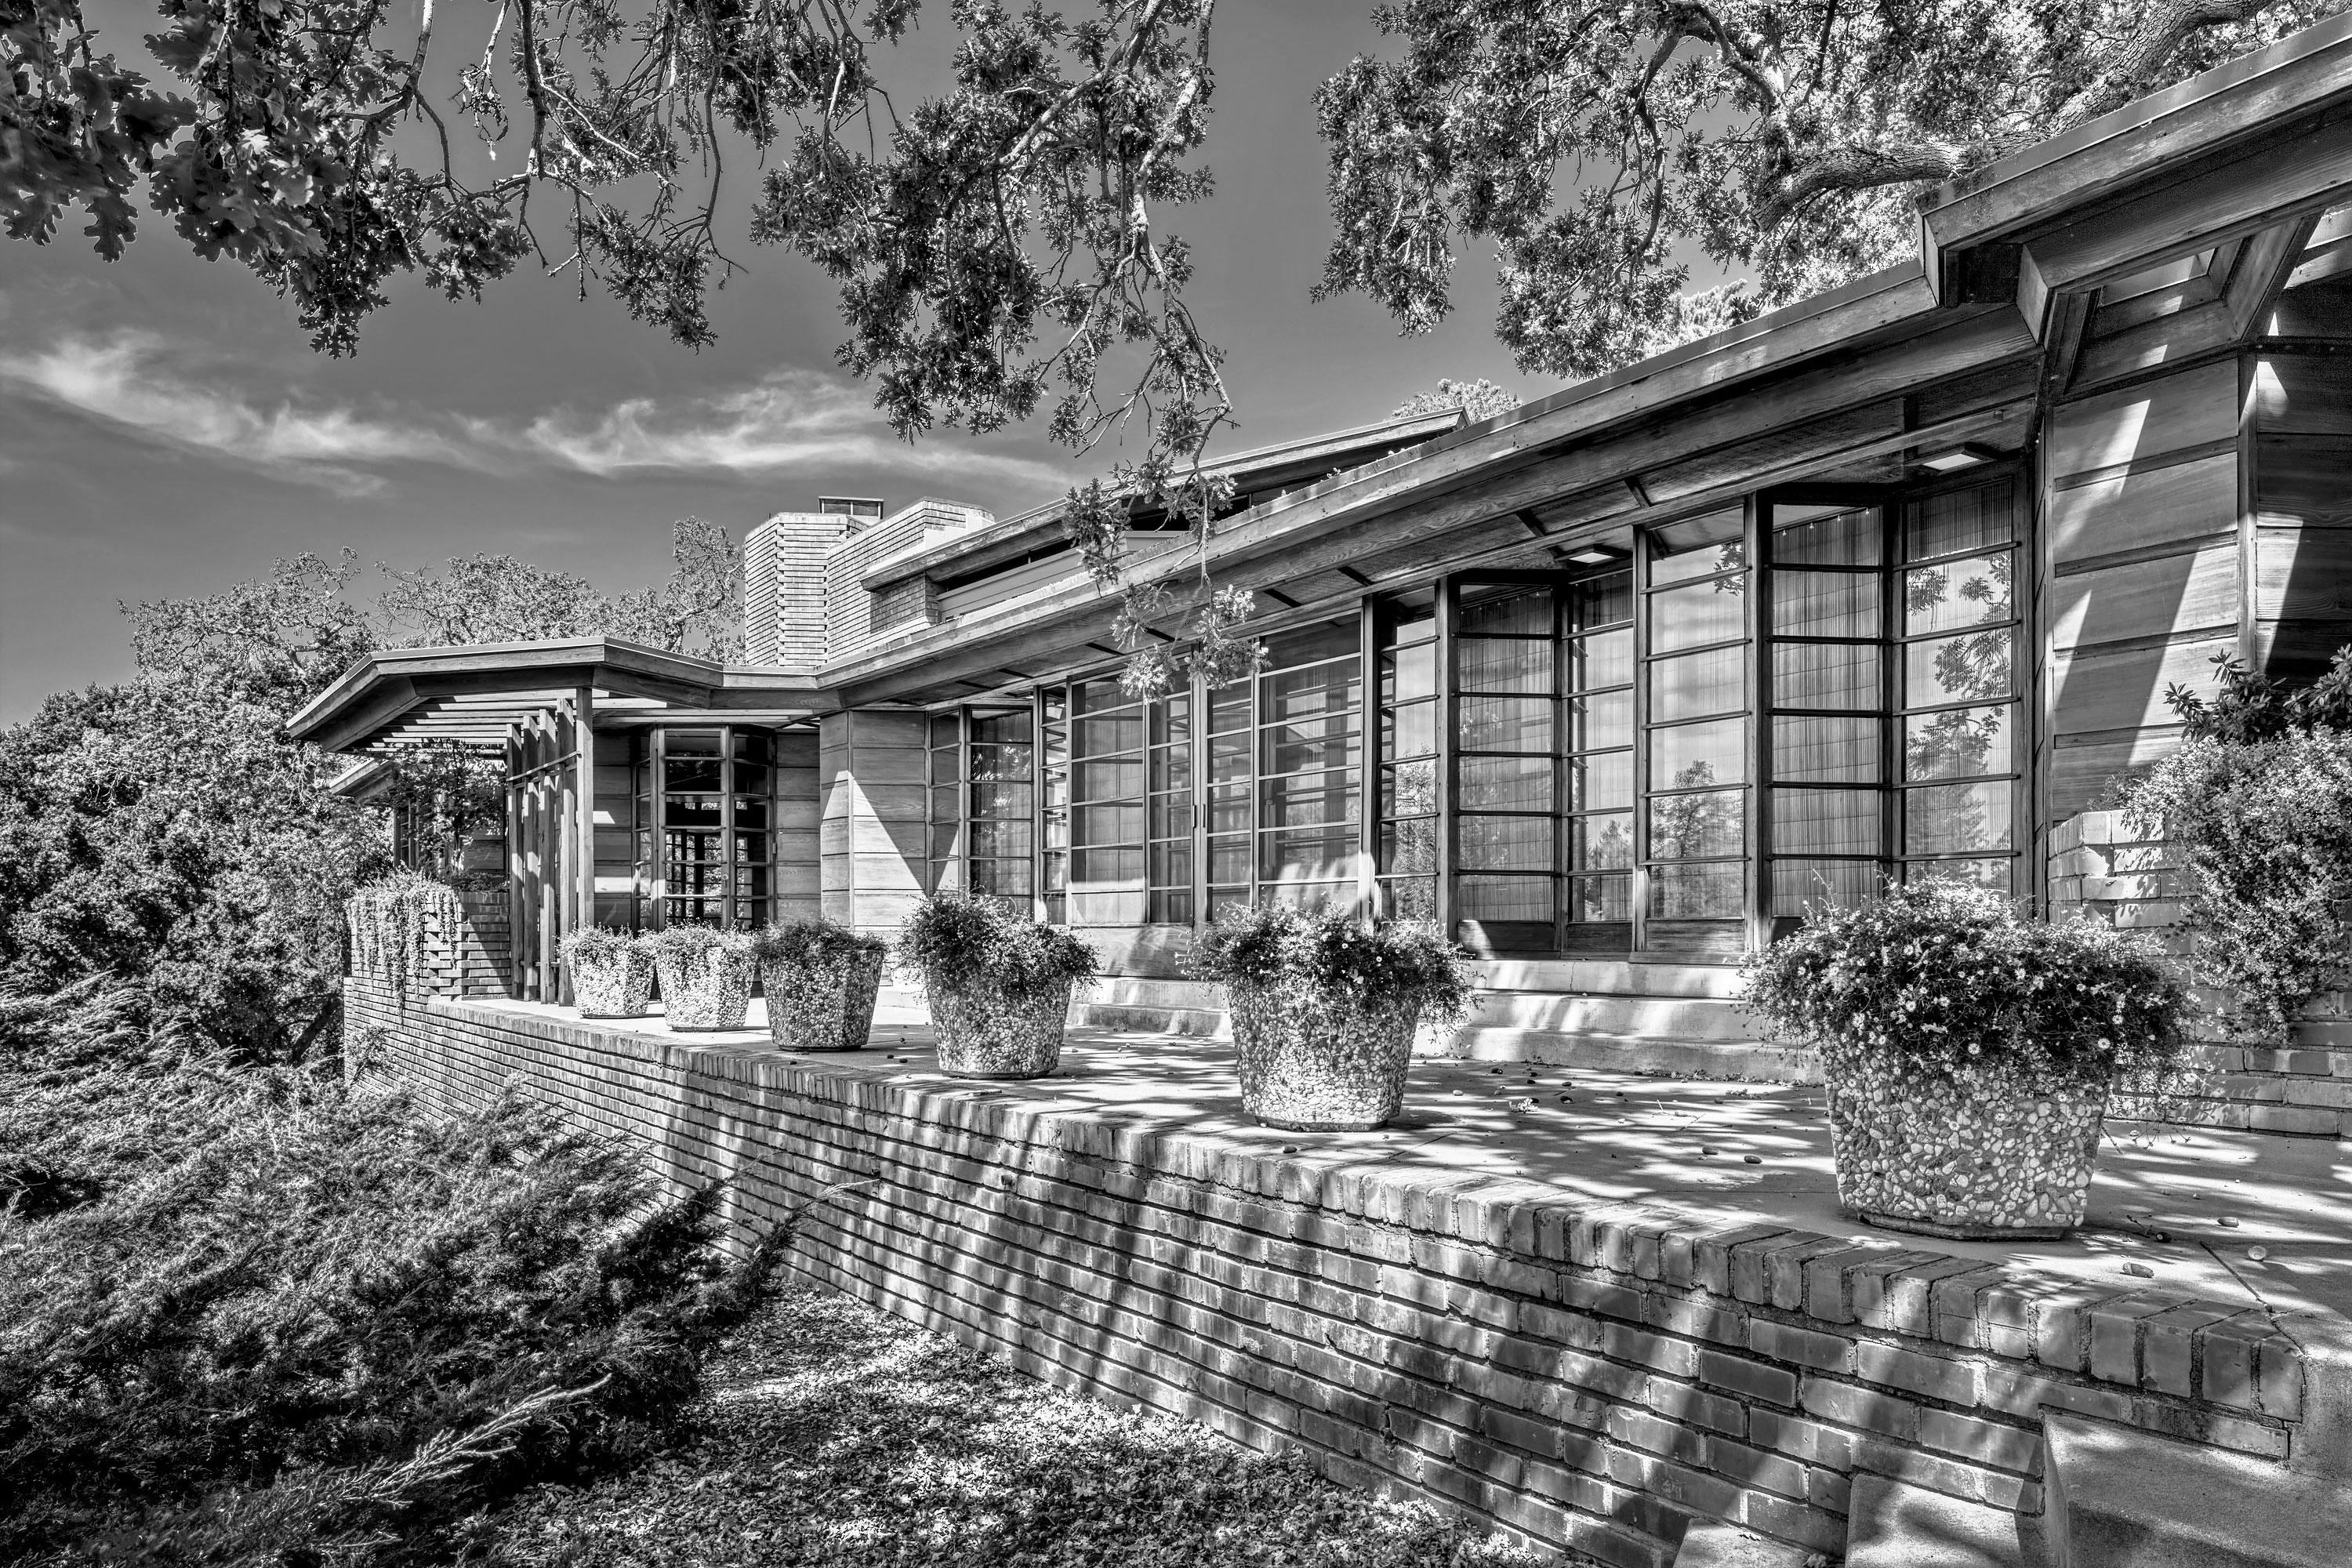 The Hanna House - Palo Alto, California. Architectural Photography by Alan Blakely.